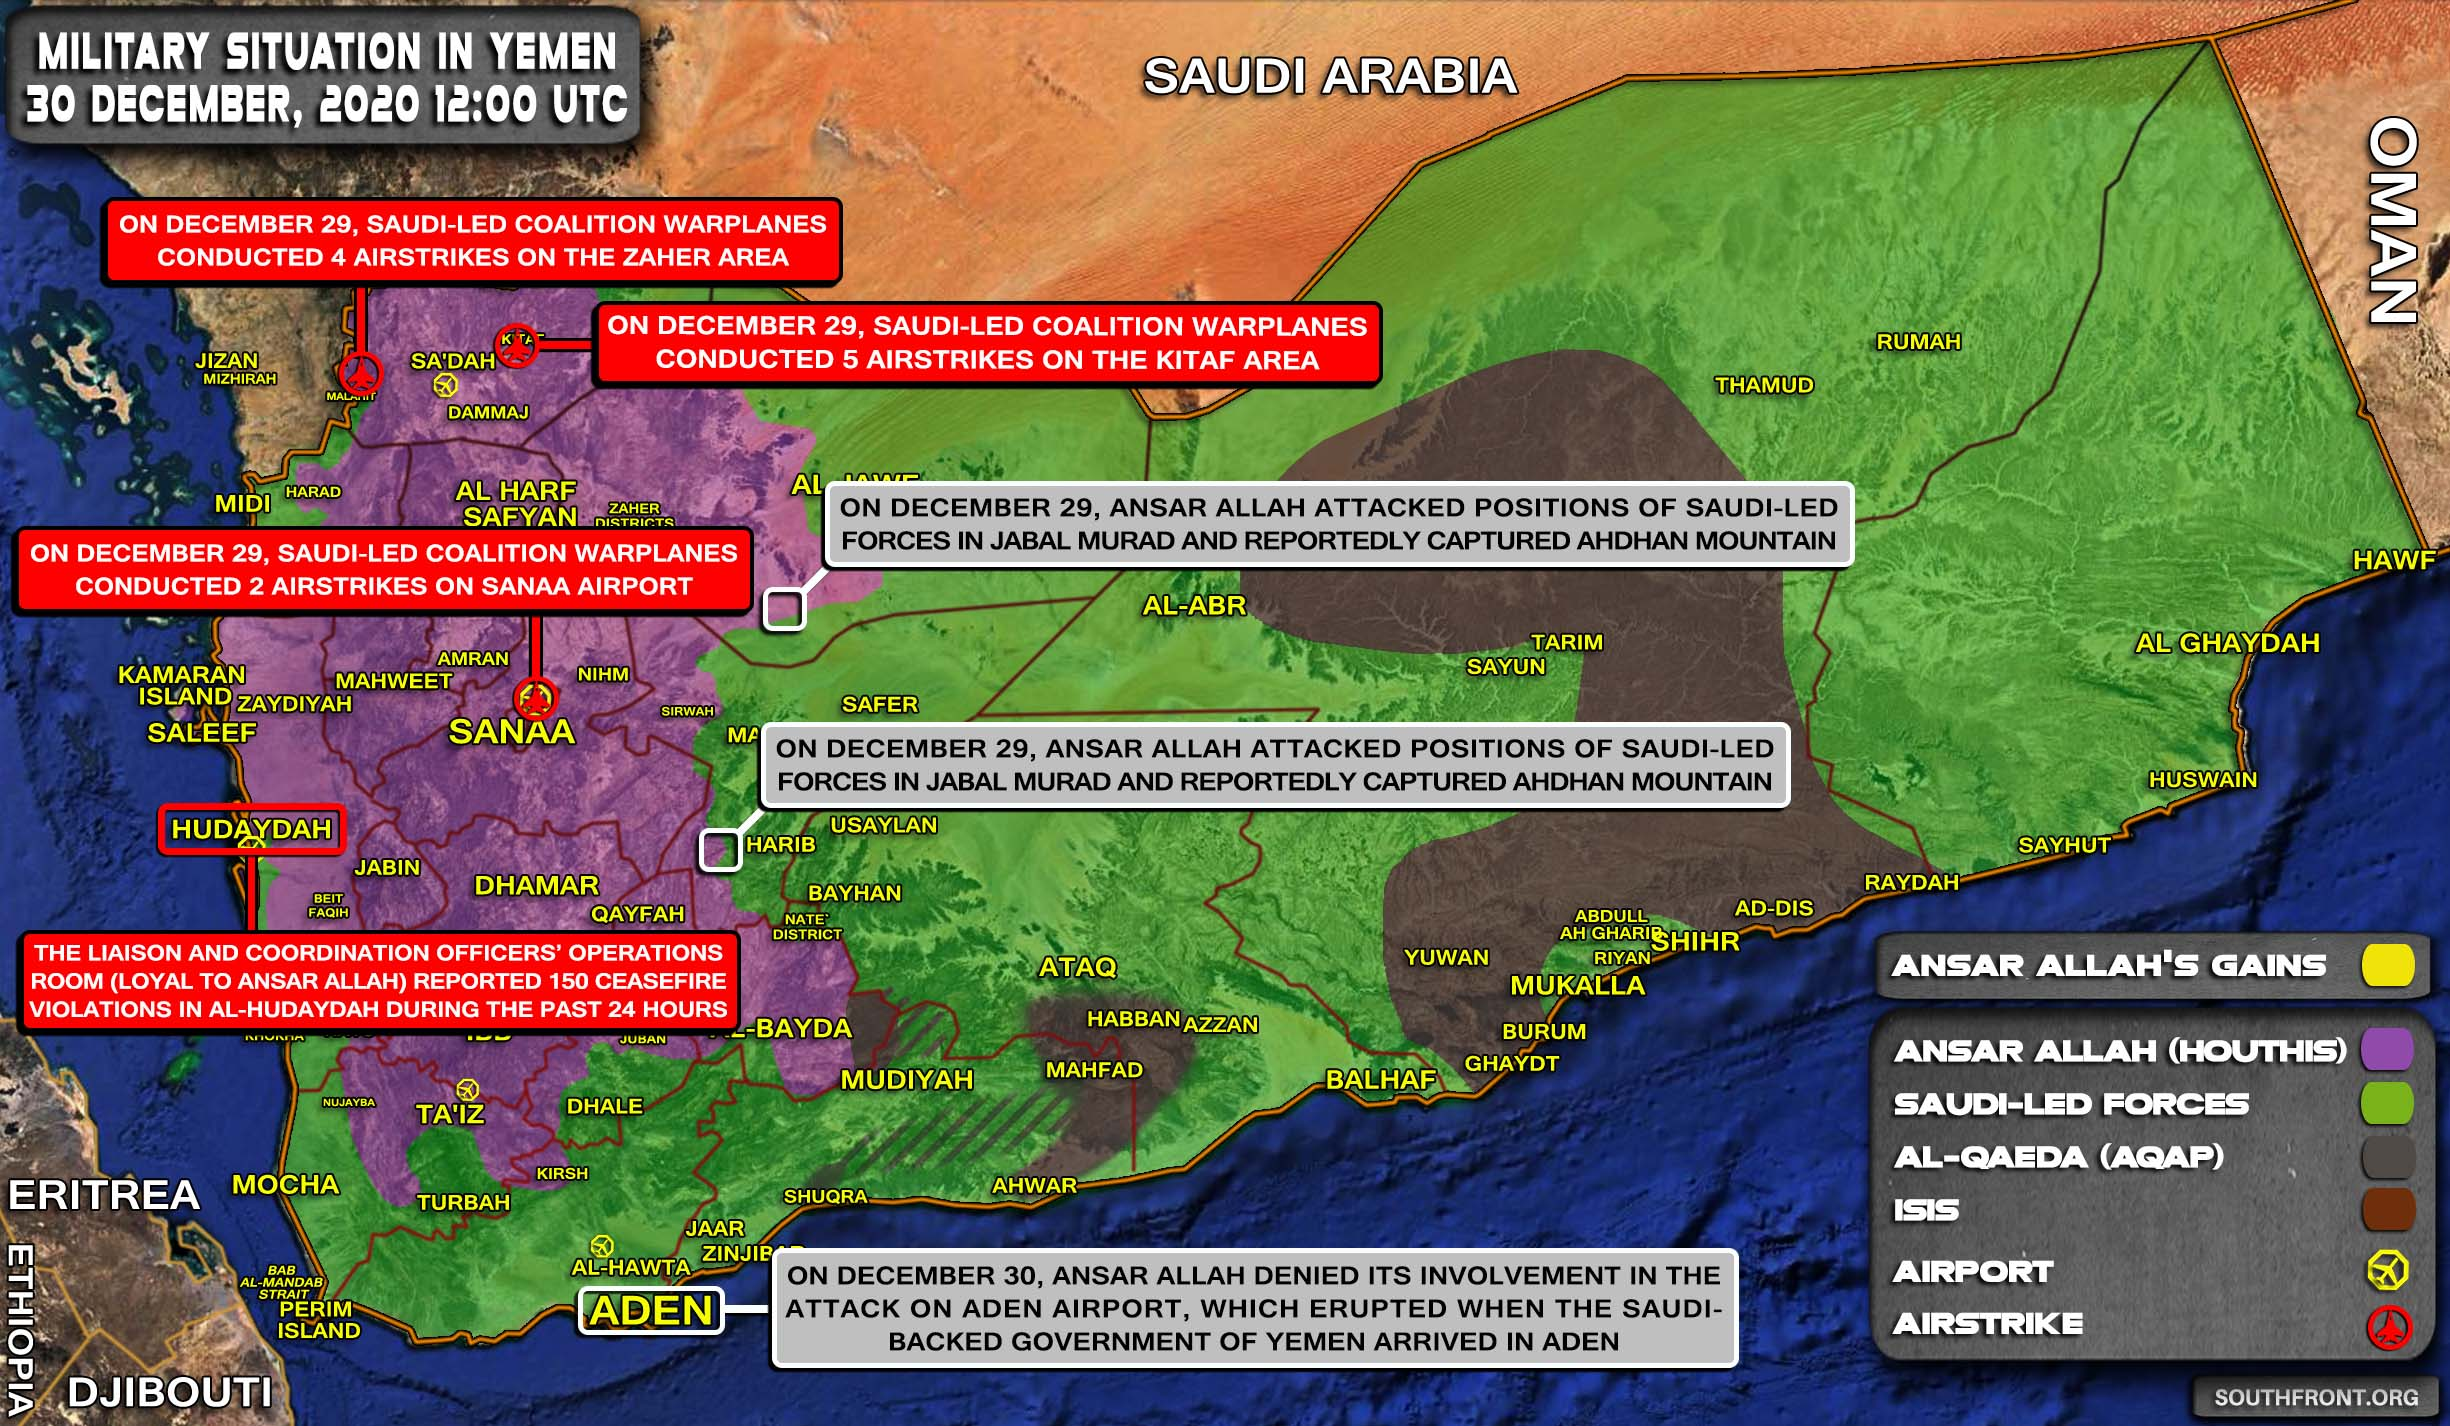 Explosions Follow Saudi-Backed Yemeni Government To Aden's Presidential Palace